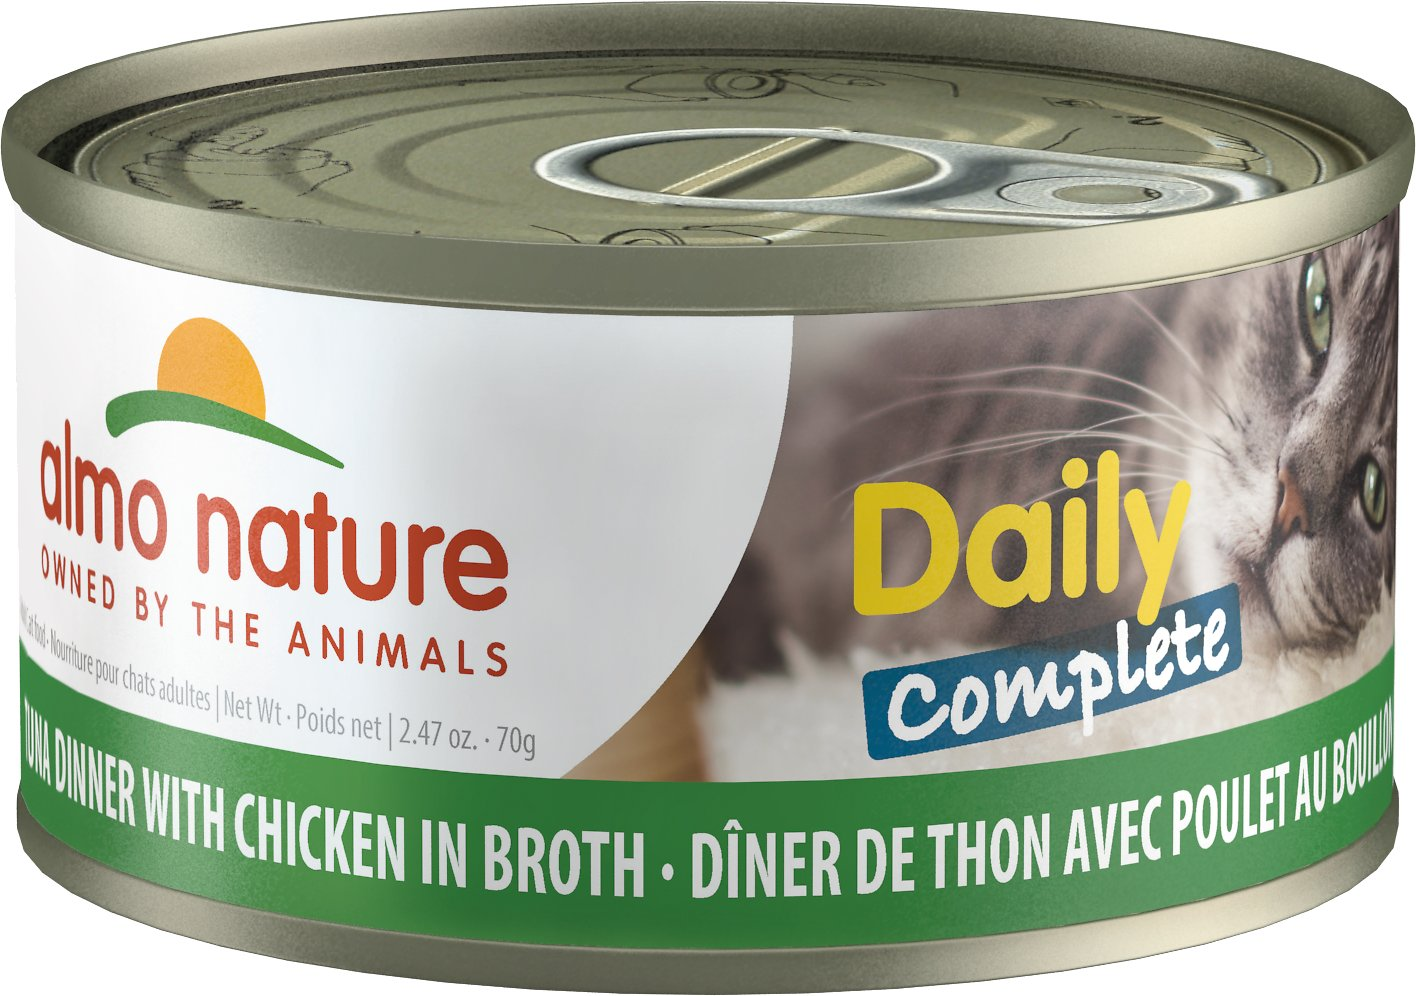 Almo Nature Daily Complete Tuna Dinner with Chicken in Broth Grain-Free Wet Cat Food, 2.47-oz